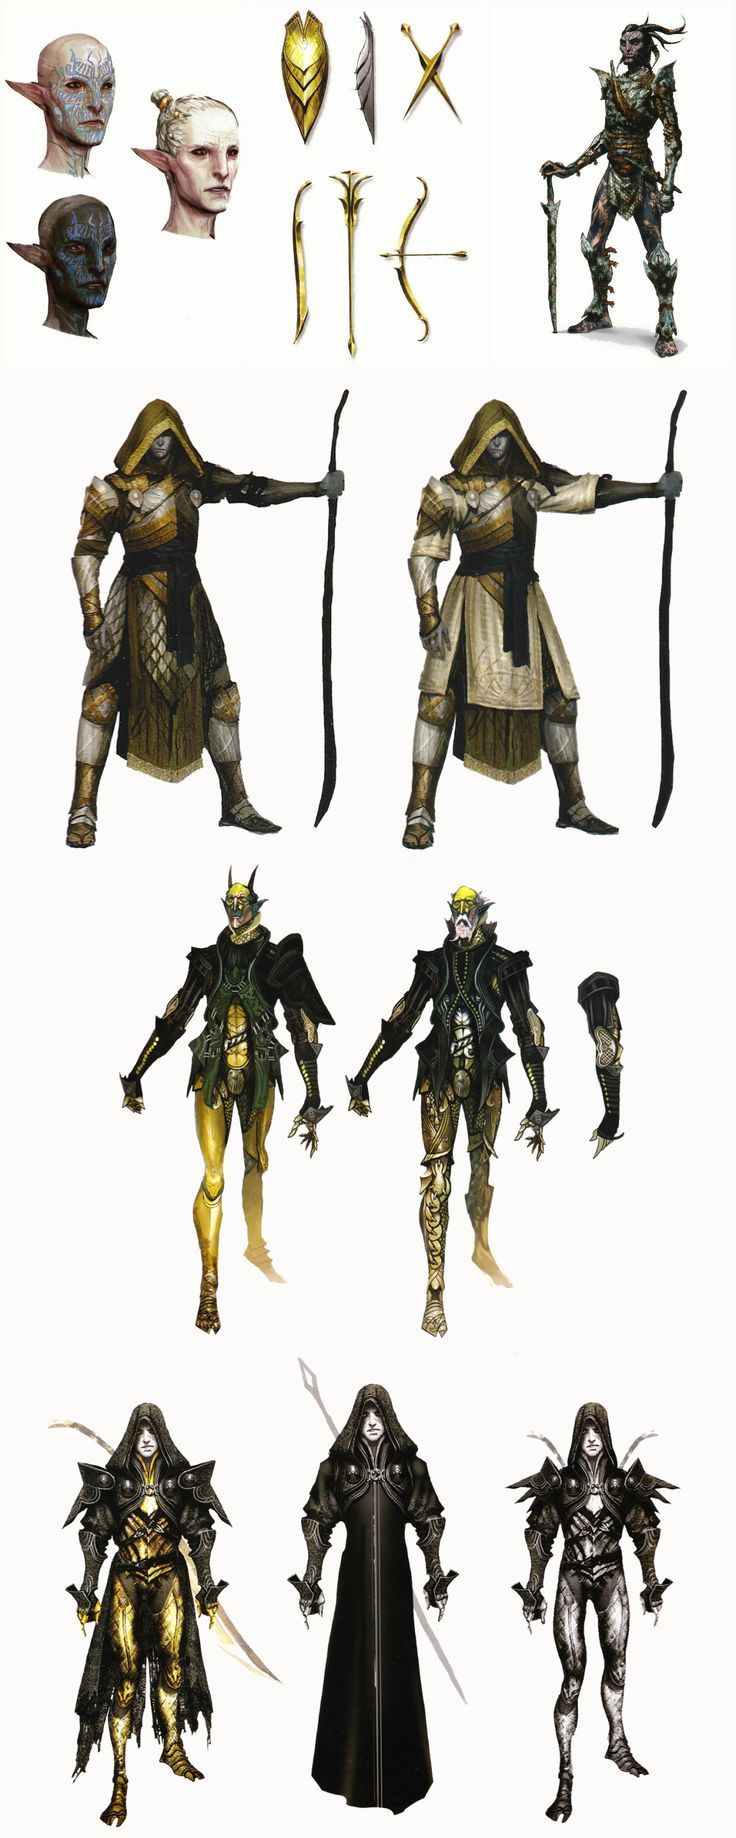 Dragon Age Inquisition Character Design Ideas : The temple of mythal keepers concept art in